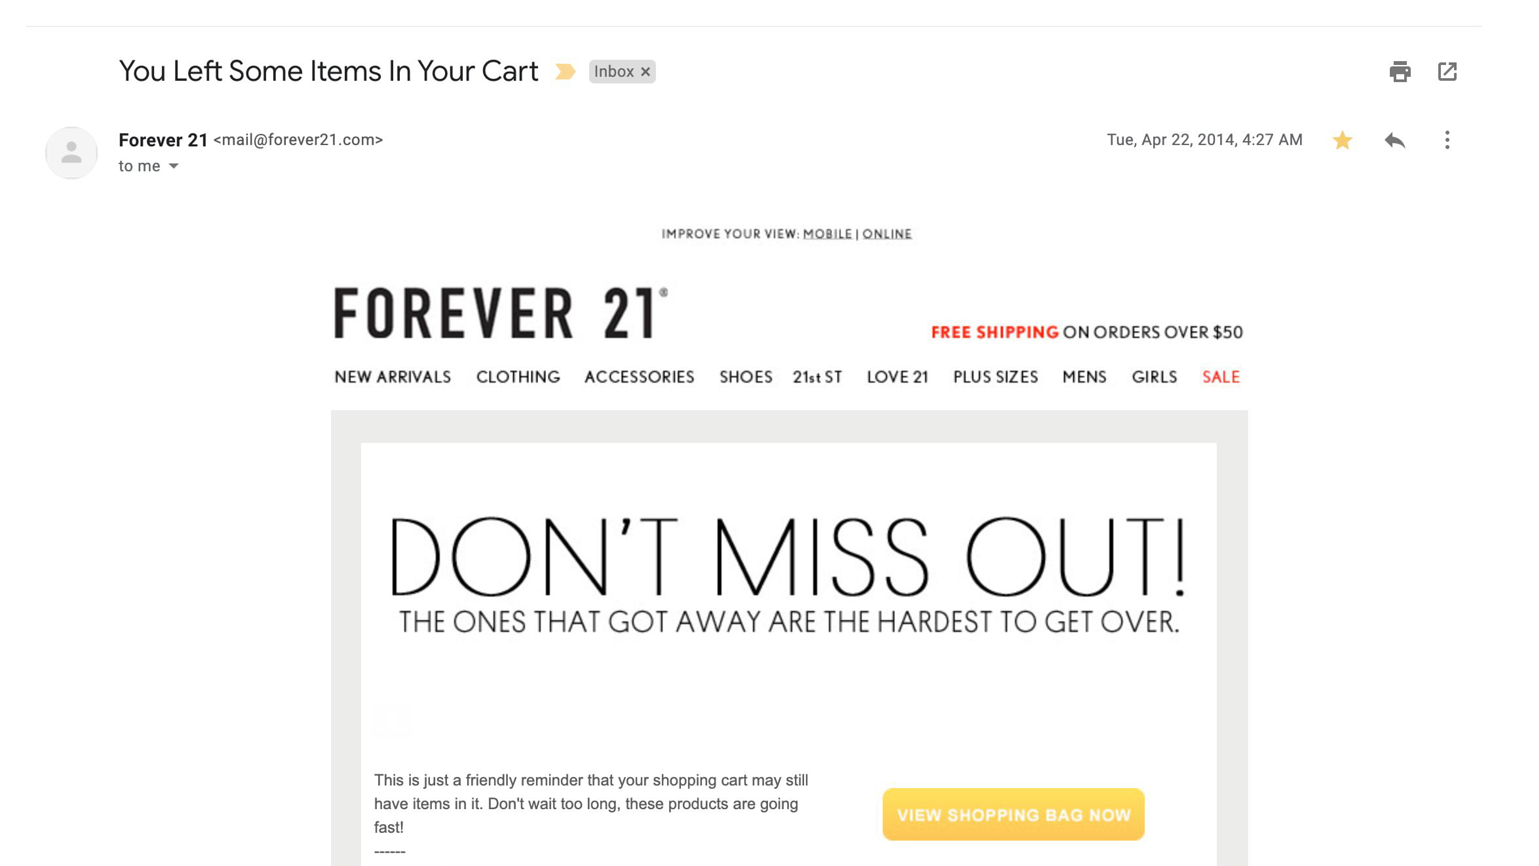 Forever 21 promotional email